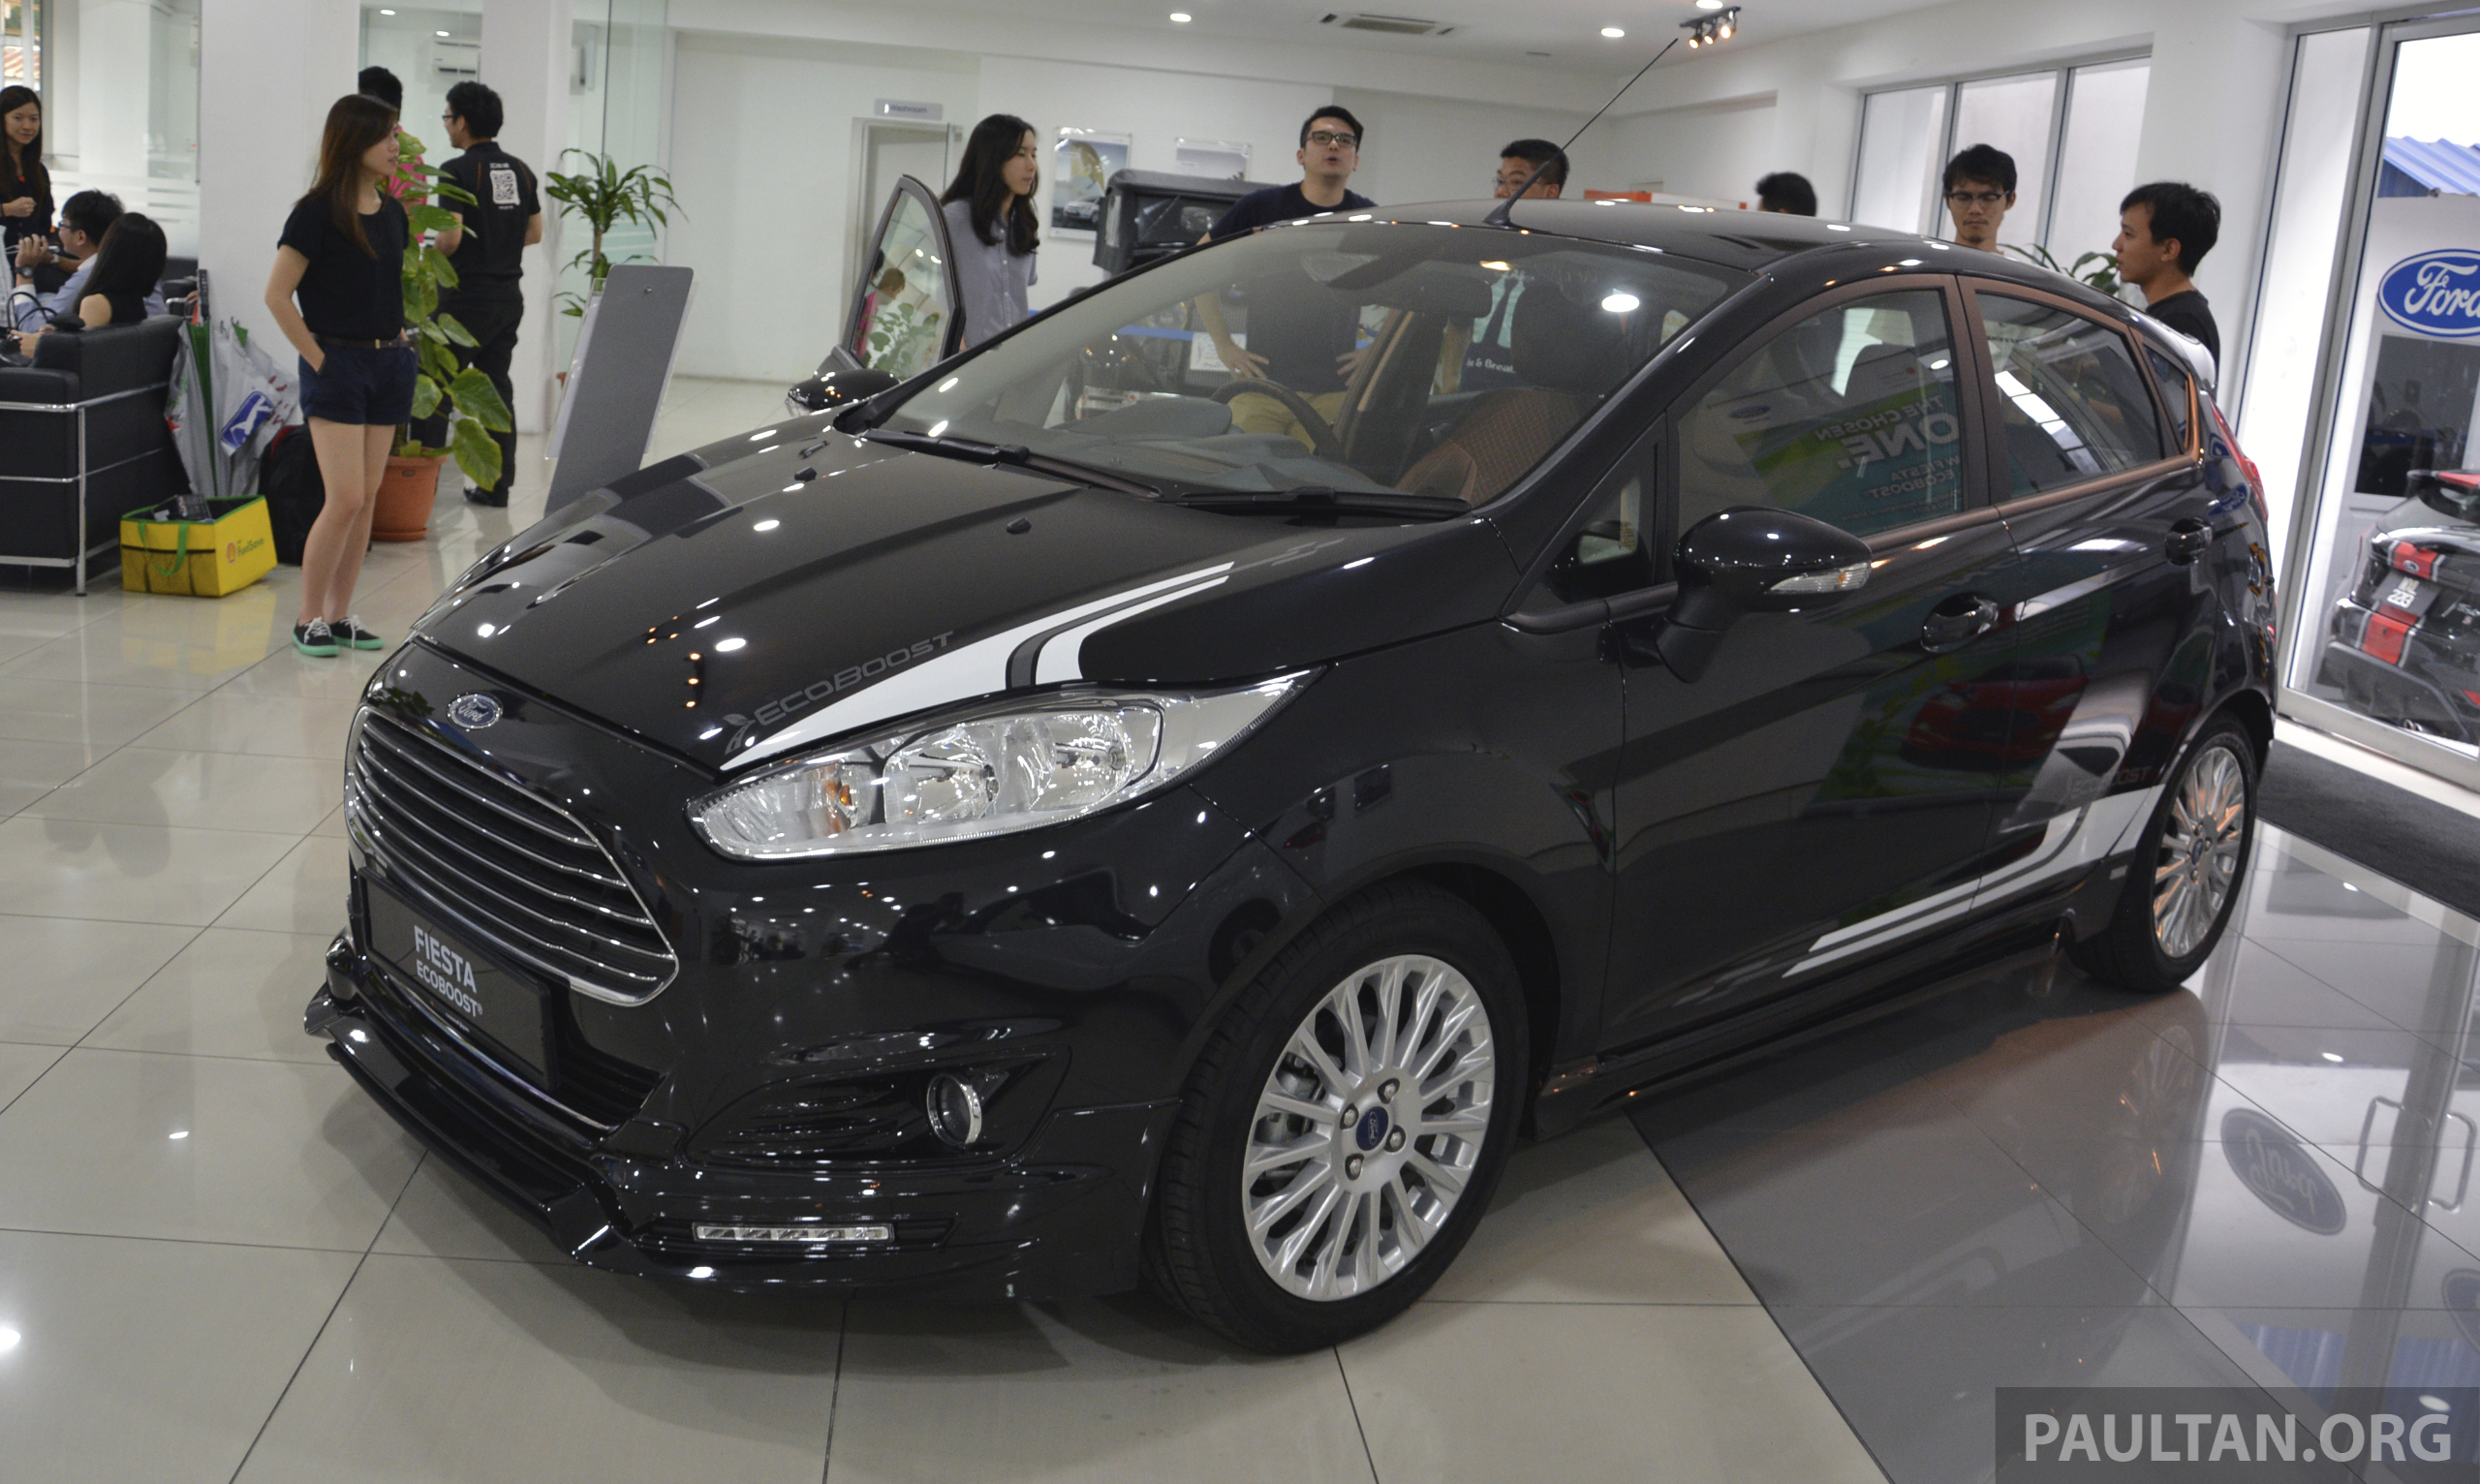 ford fiesta 1 0 ecoboost launched rm93 888 image 245528. Black Bedroom Furniture Sets. Home Design Ideas